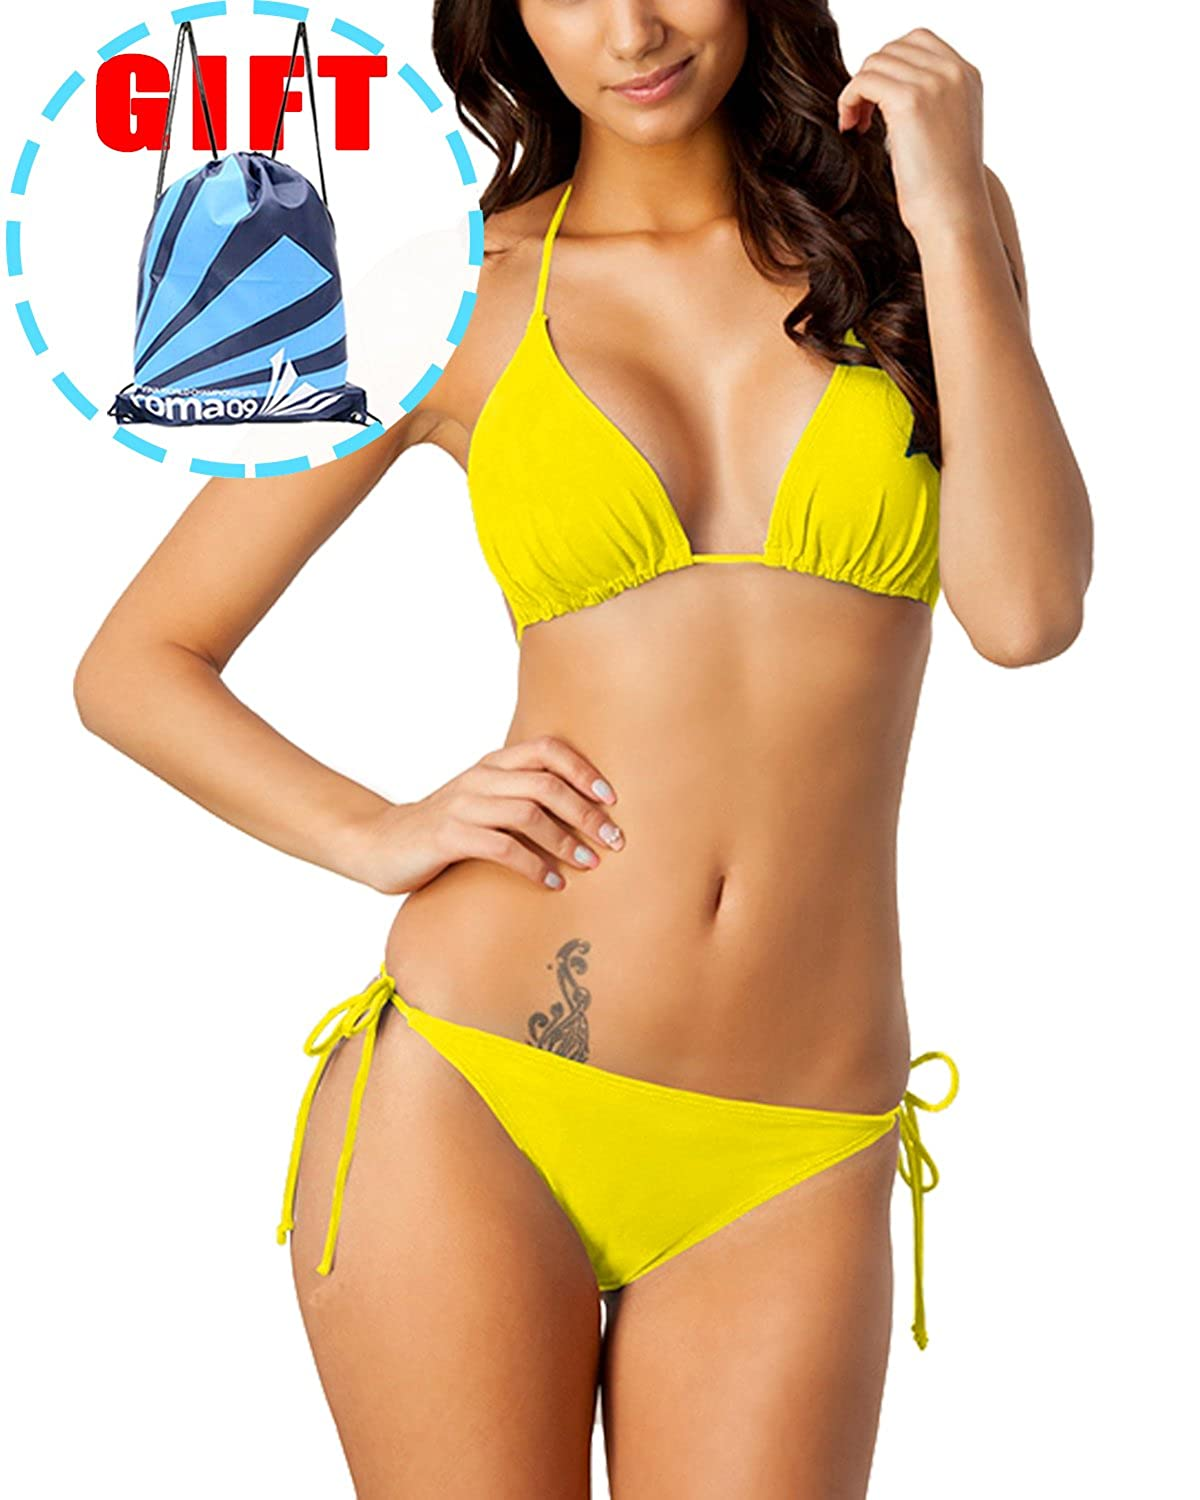 ee593984a3 Our Size: 5 sexy BIKINI SET (black, yellow, purple, blue, pink,  orange)Series and from SIZE (M=US 6-8, L=US 8-10, XL=US 10-12, XXL=12-14,  ...